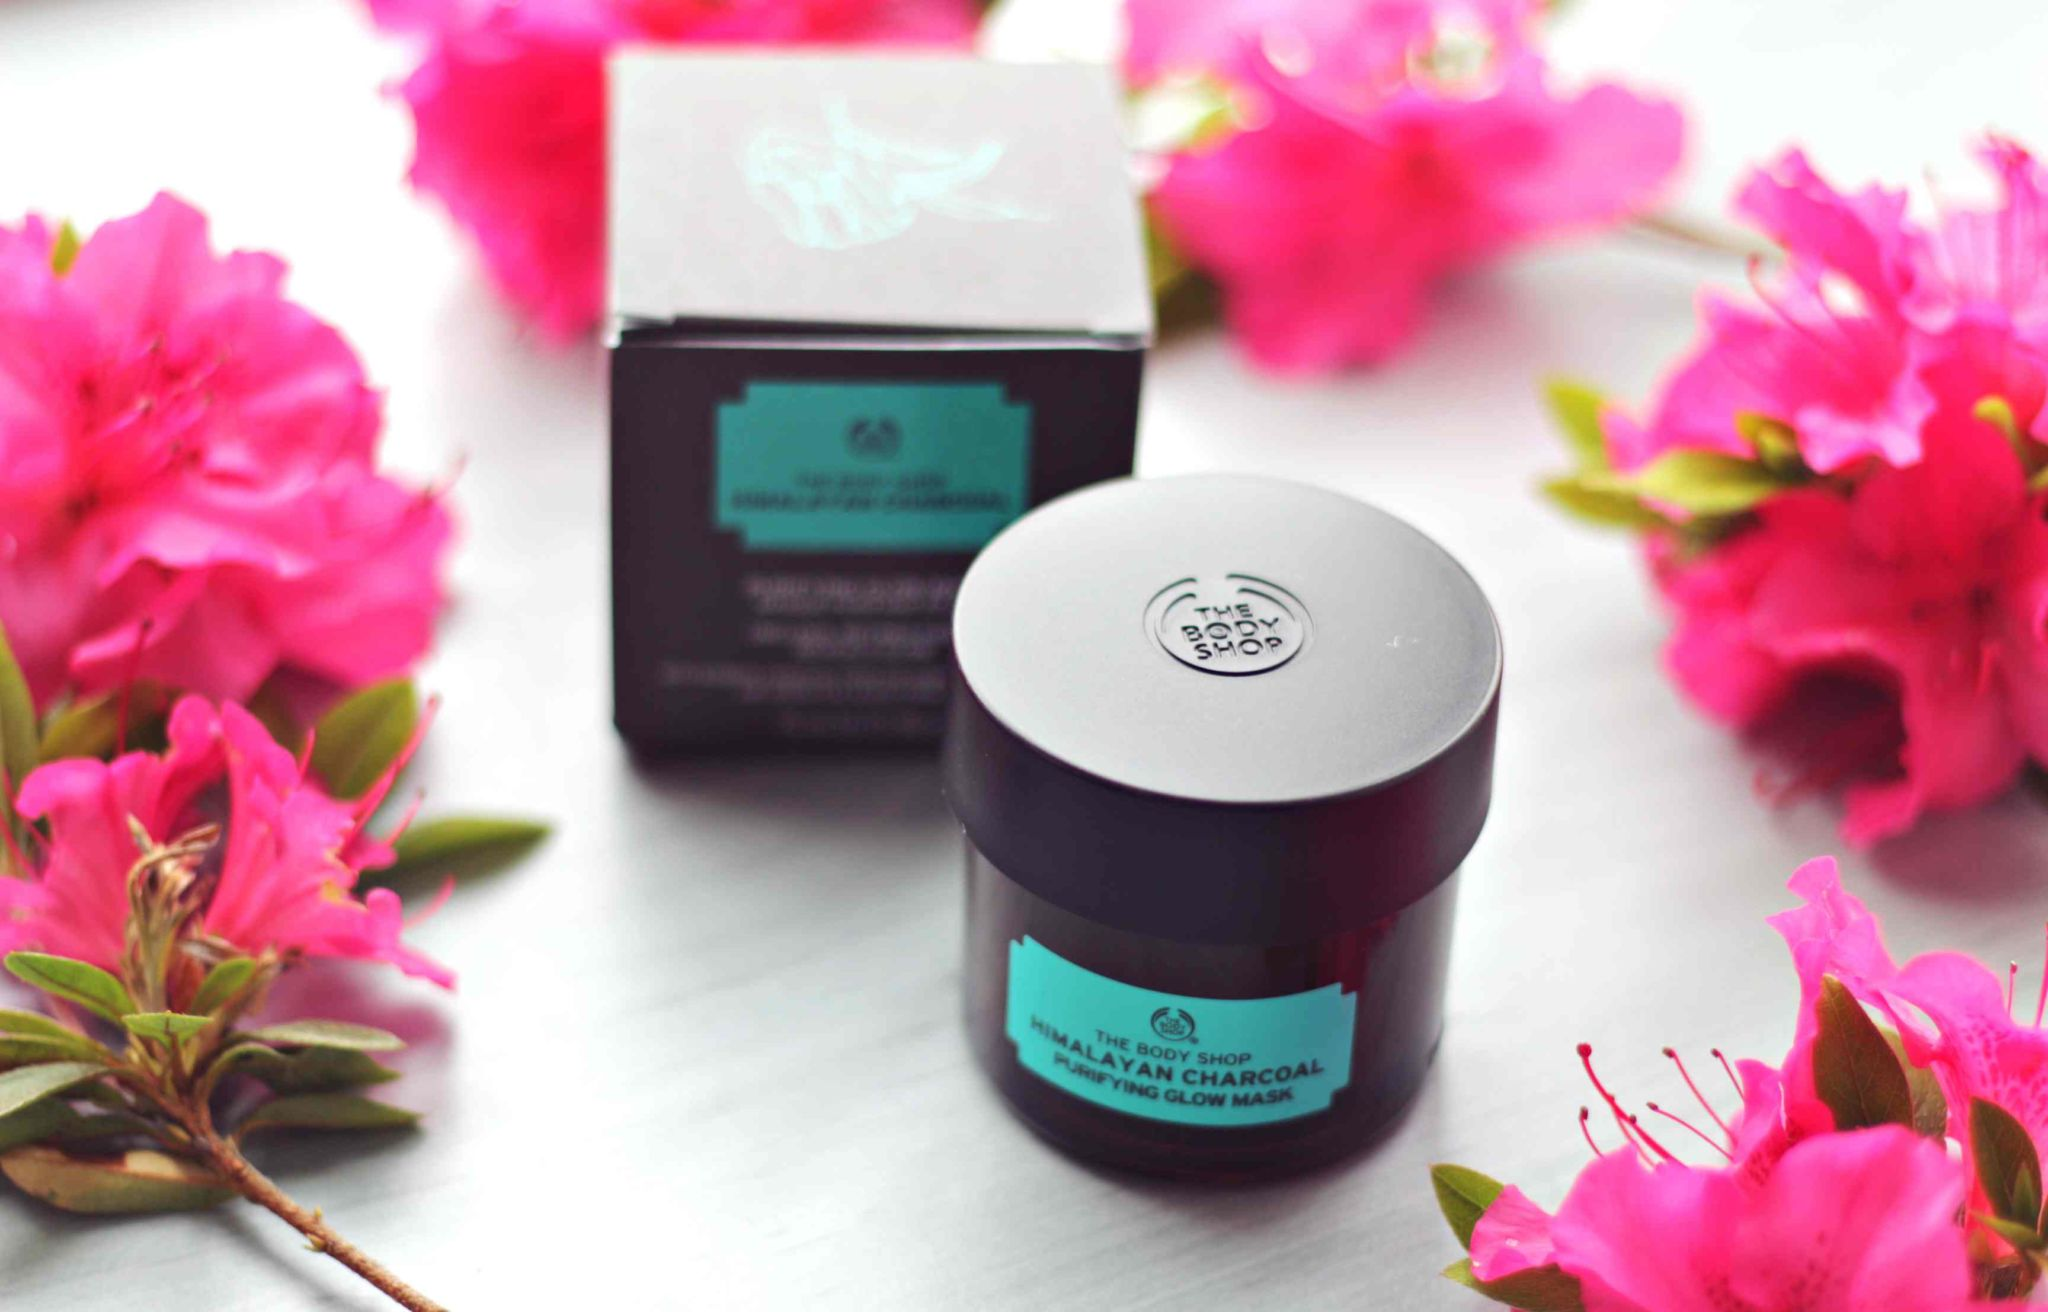 Clay Mud Mask The Body Shop